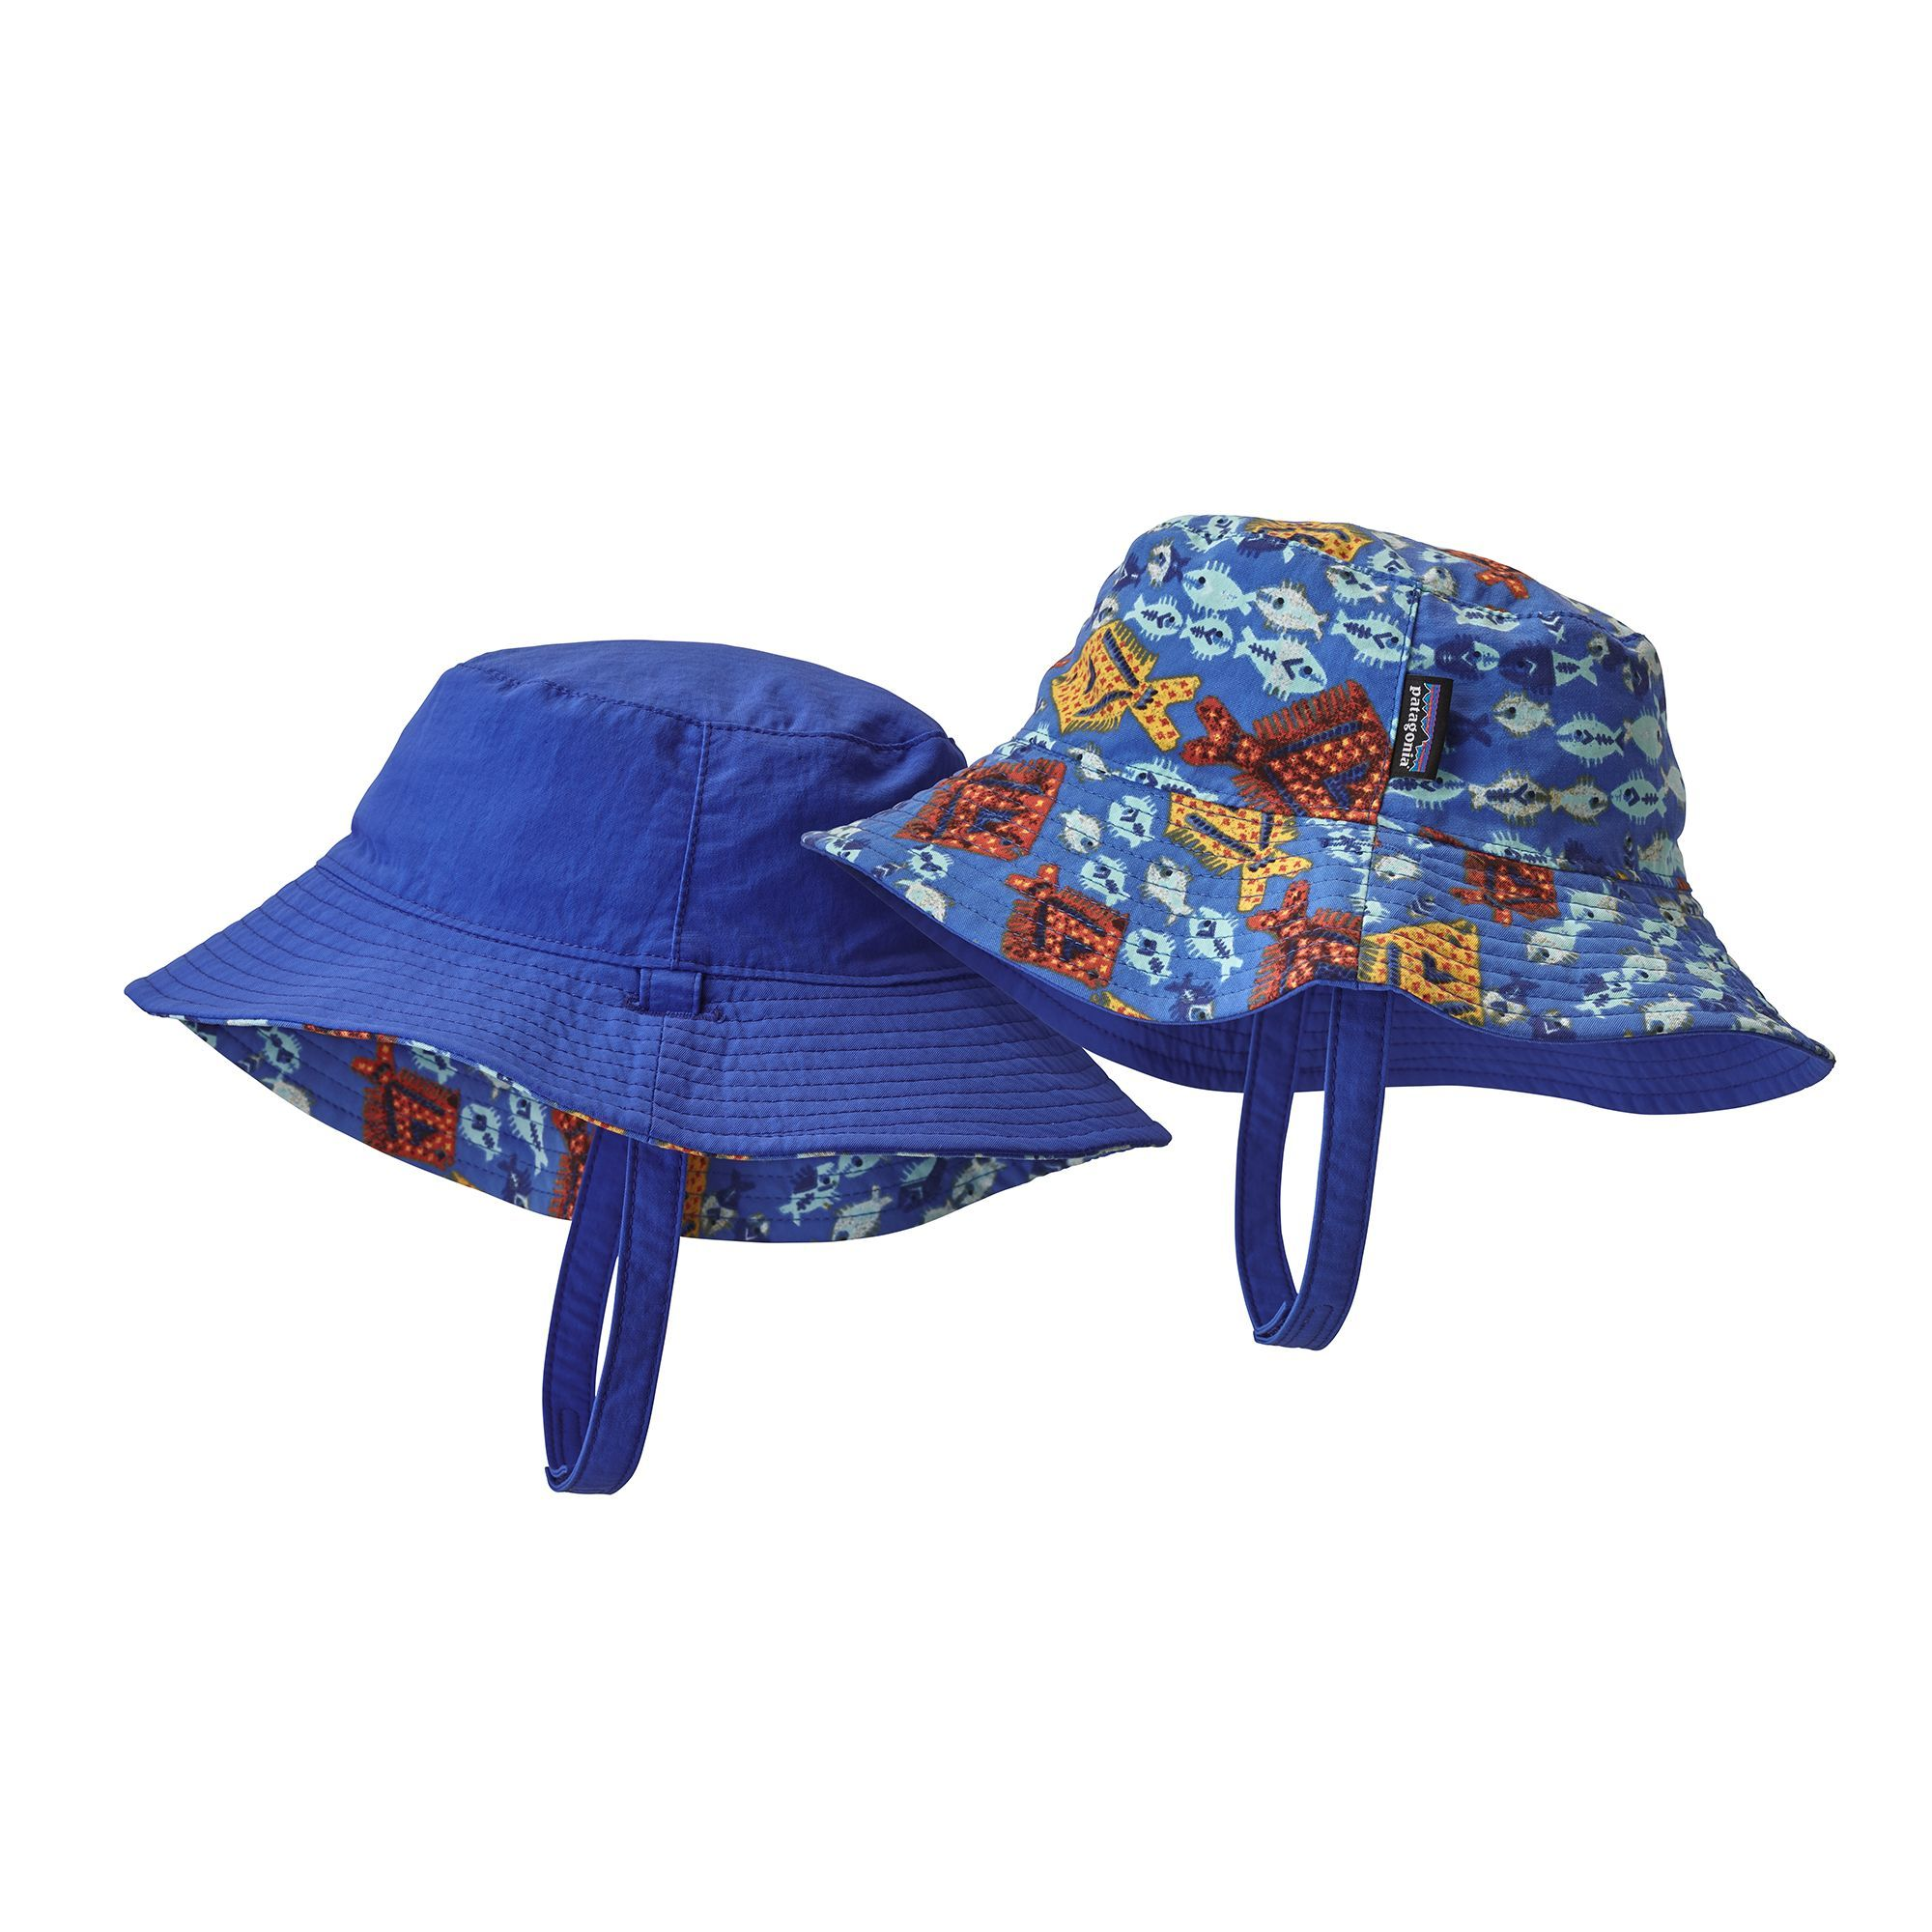 HATLEY BOYS REVERSIBLE UPF50 SUN PROTECTION HAT IN 2 DESIGNS